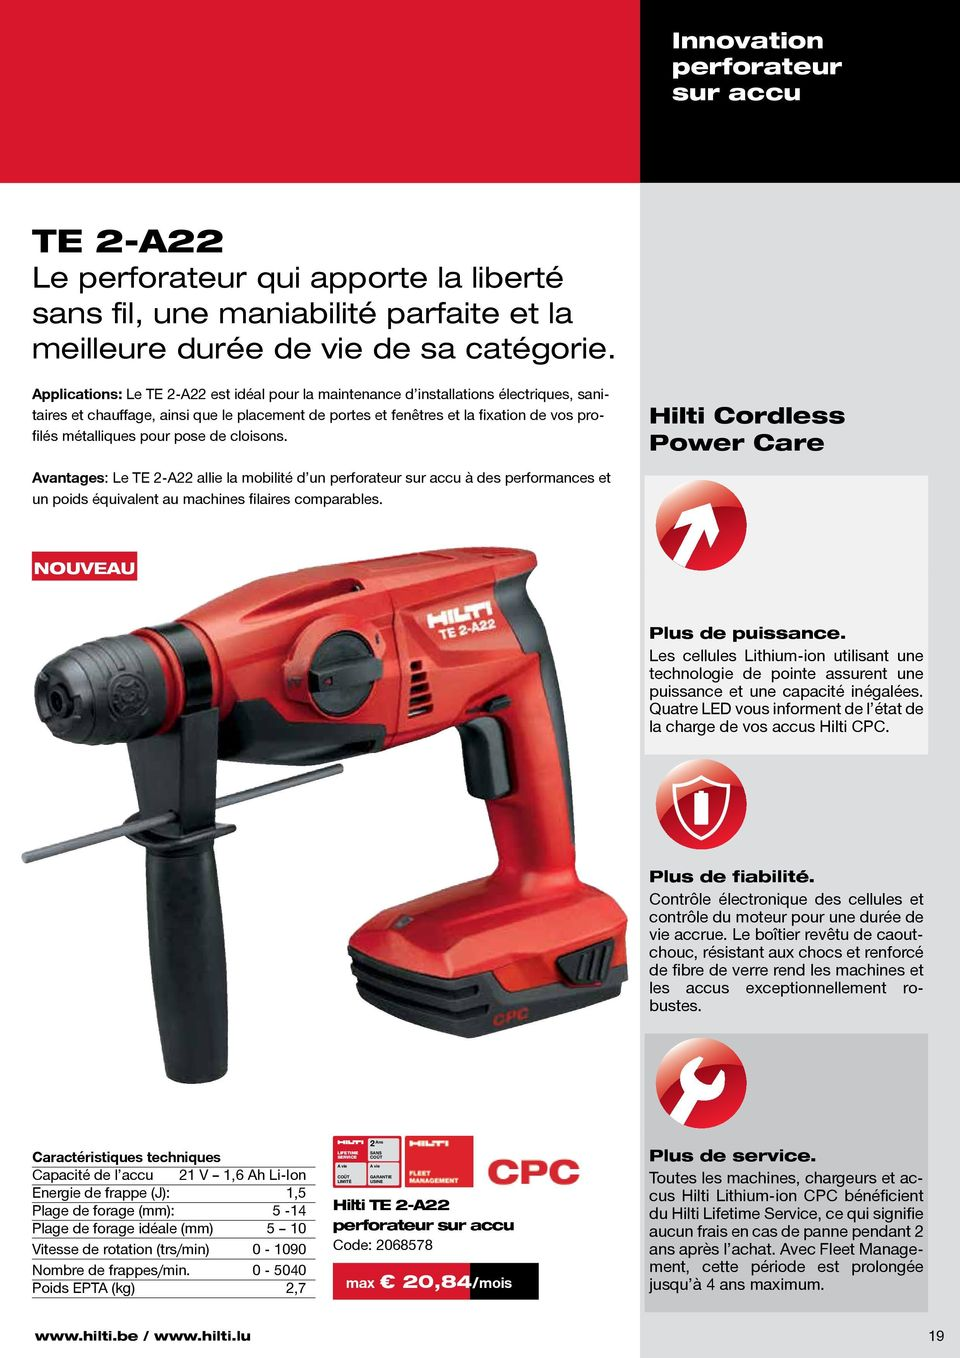 pour pose de cloisons. Hilti Cordless Power Care Avantages: Le TE 2-A22 allie la mobilité d un perforateur sur accu à des performances et un poids équivalent au machines filaires comparables.